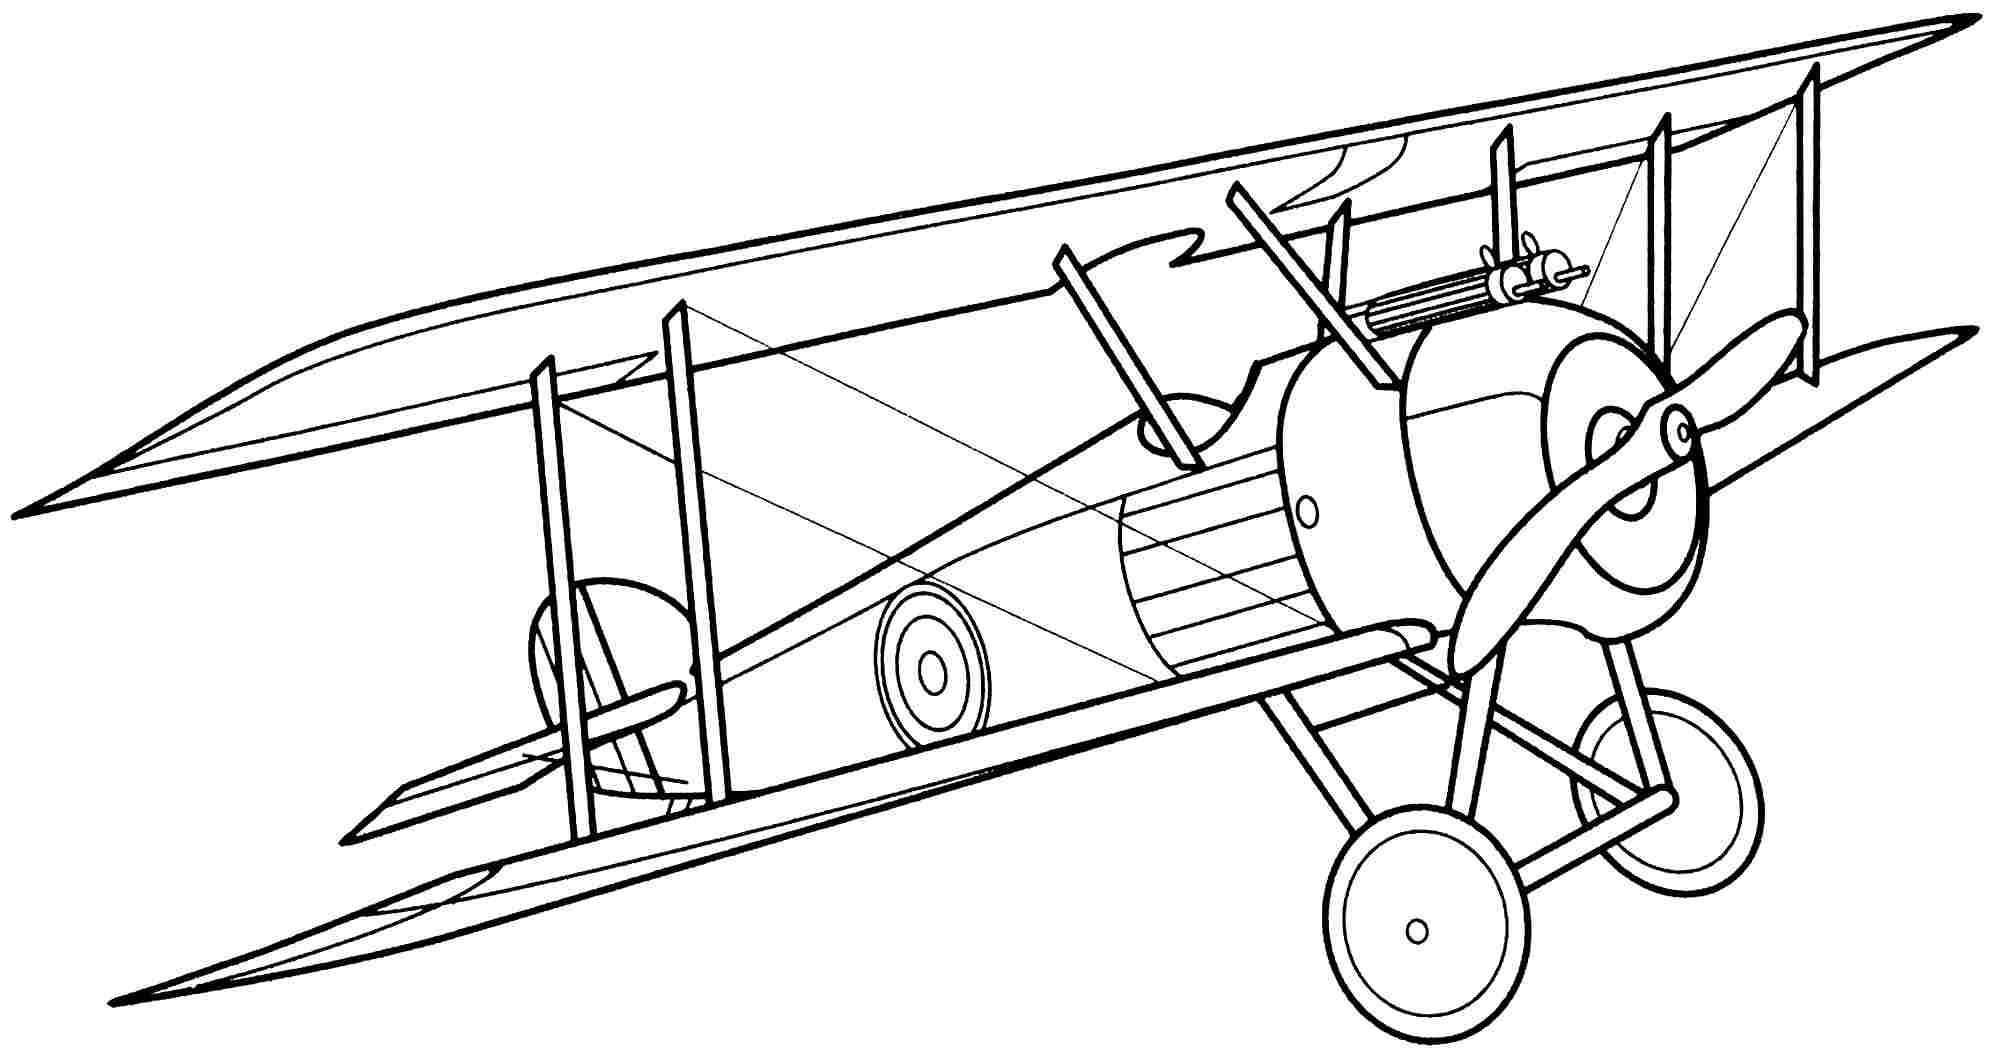 Airplane Drawing Simple At Getdrawings